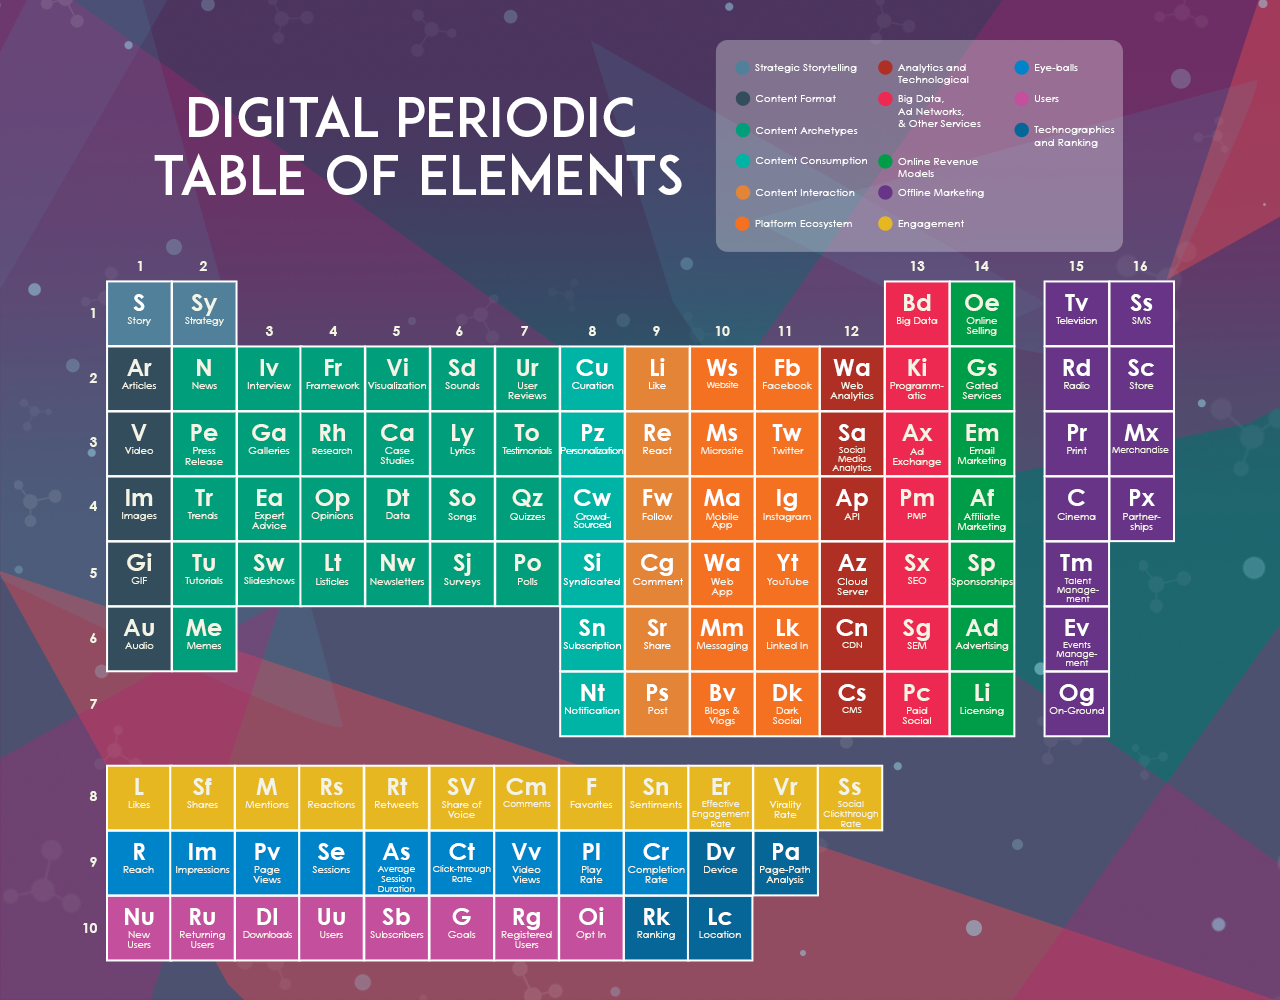 A discussion on the digital periodic table of elements table 1 digital periodic table of elements gamestrikefo Image collections